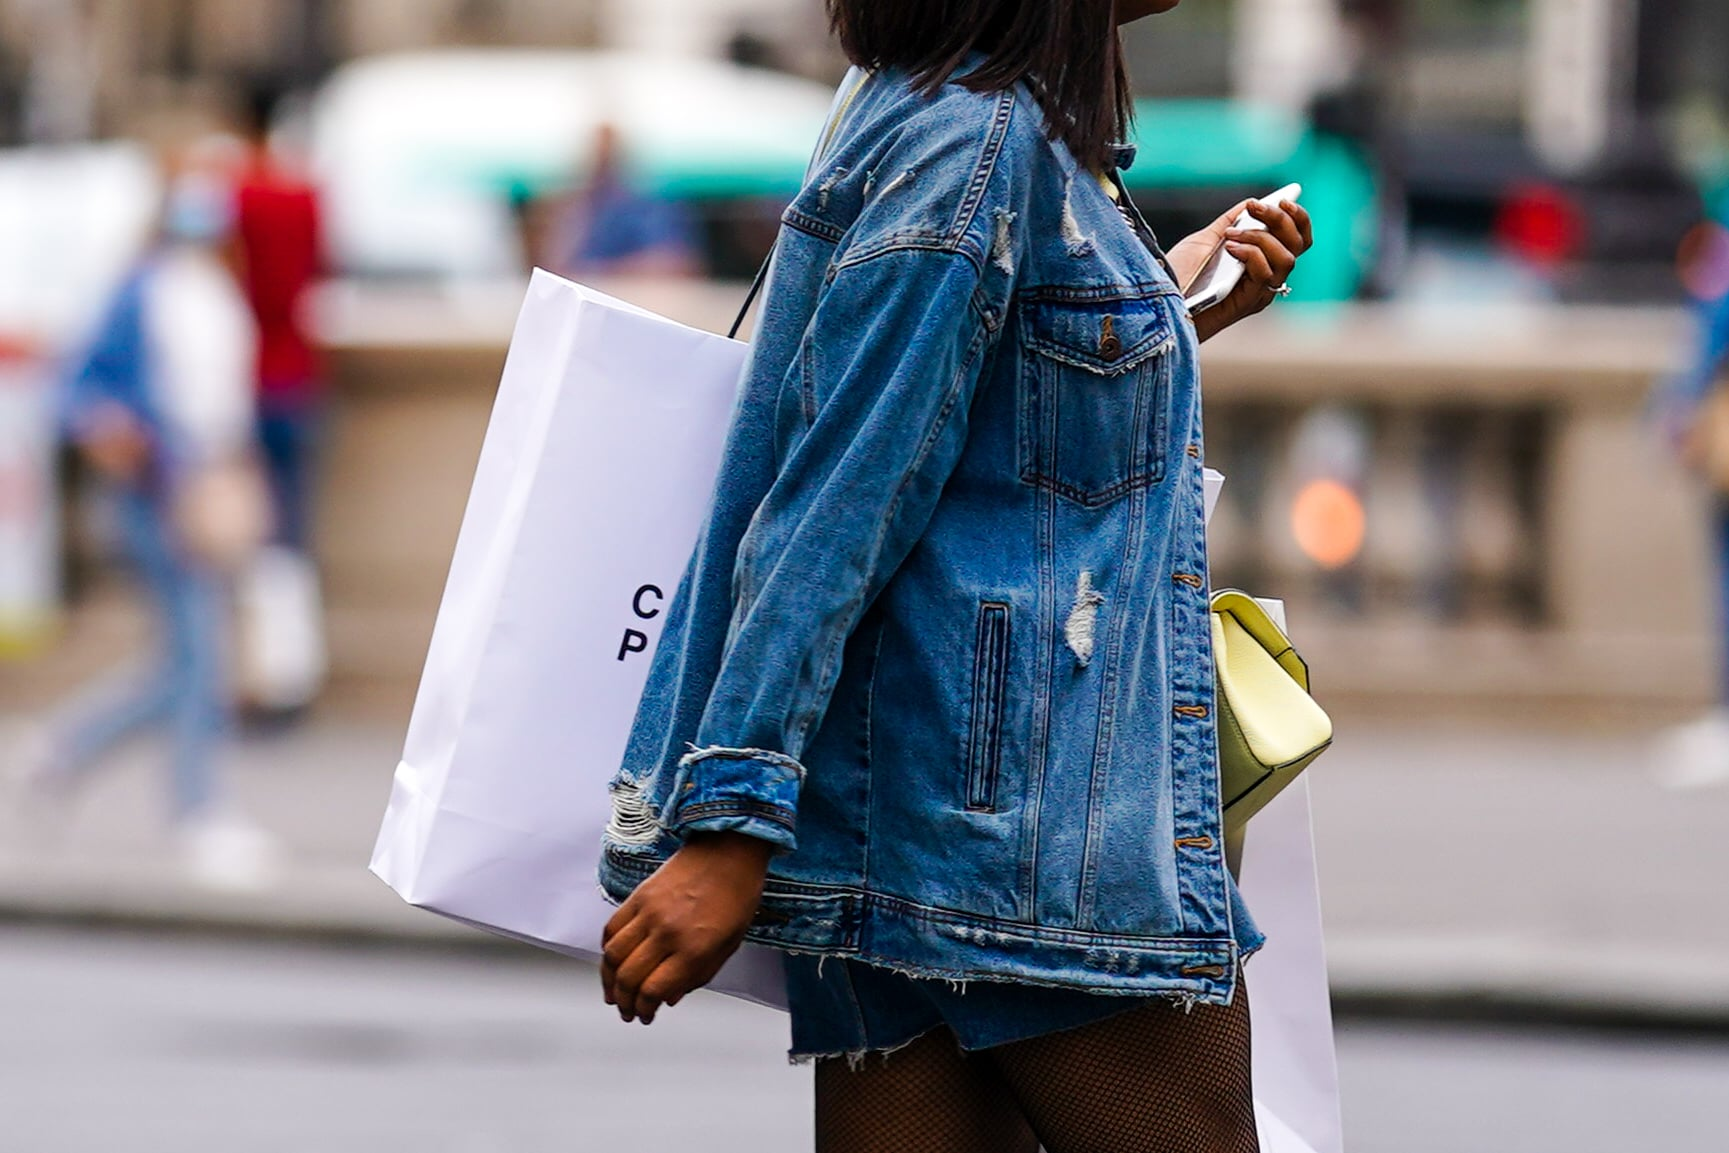 PARIS, FRANCE - JULY 04: A passerby wears a blue ripped denim jacket, a yellow bag, a large white paper shopping bag, on July 04, 2020 in Paris, France. (Photo by Edward Berthelot/Getty Images)